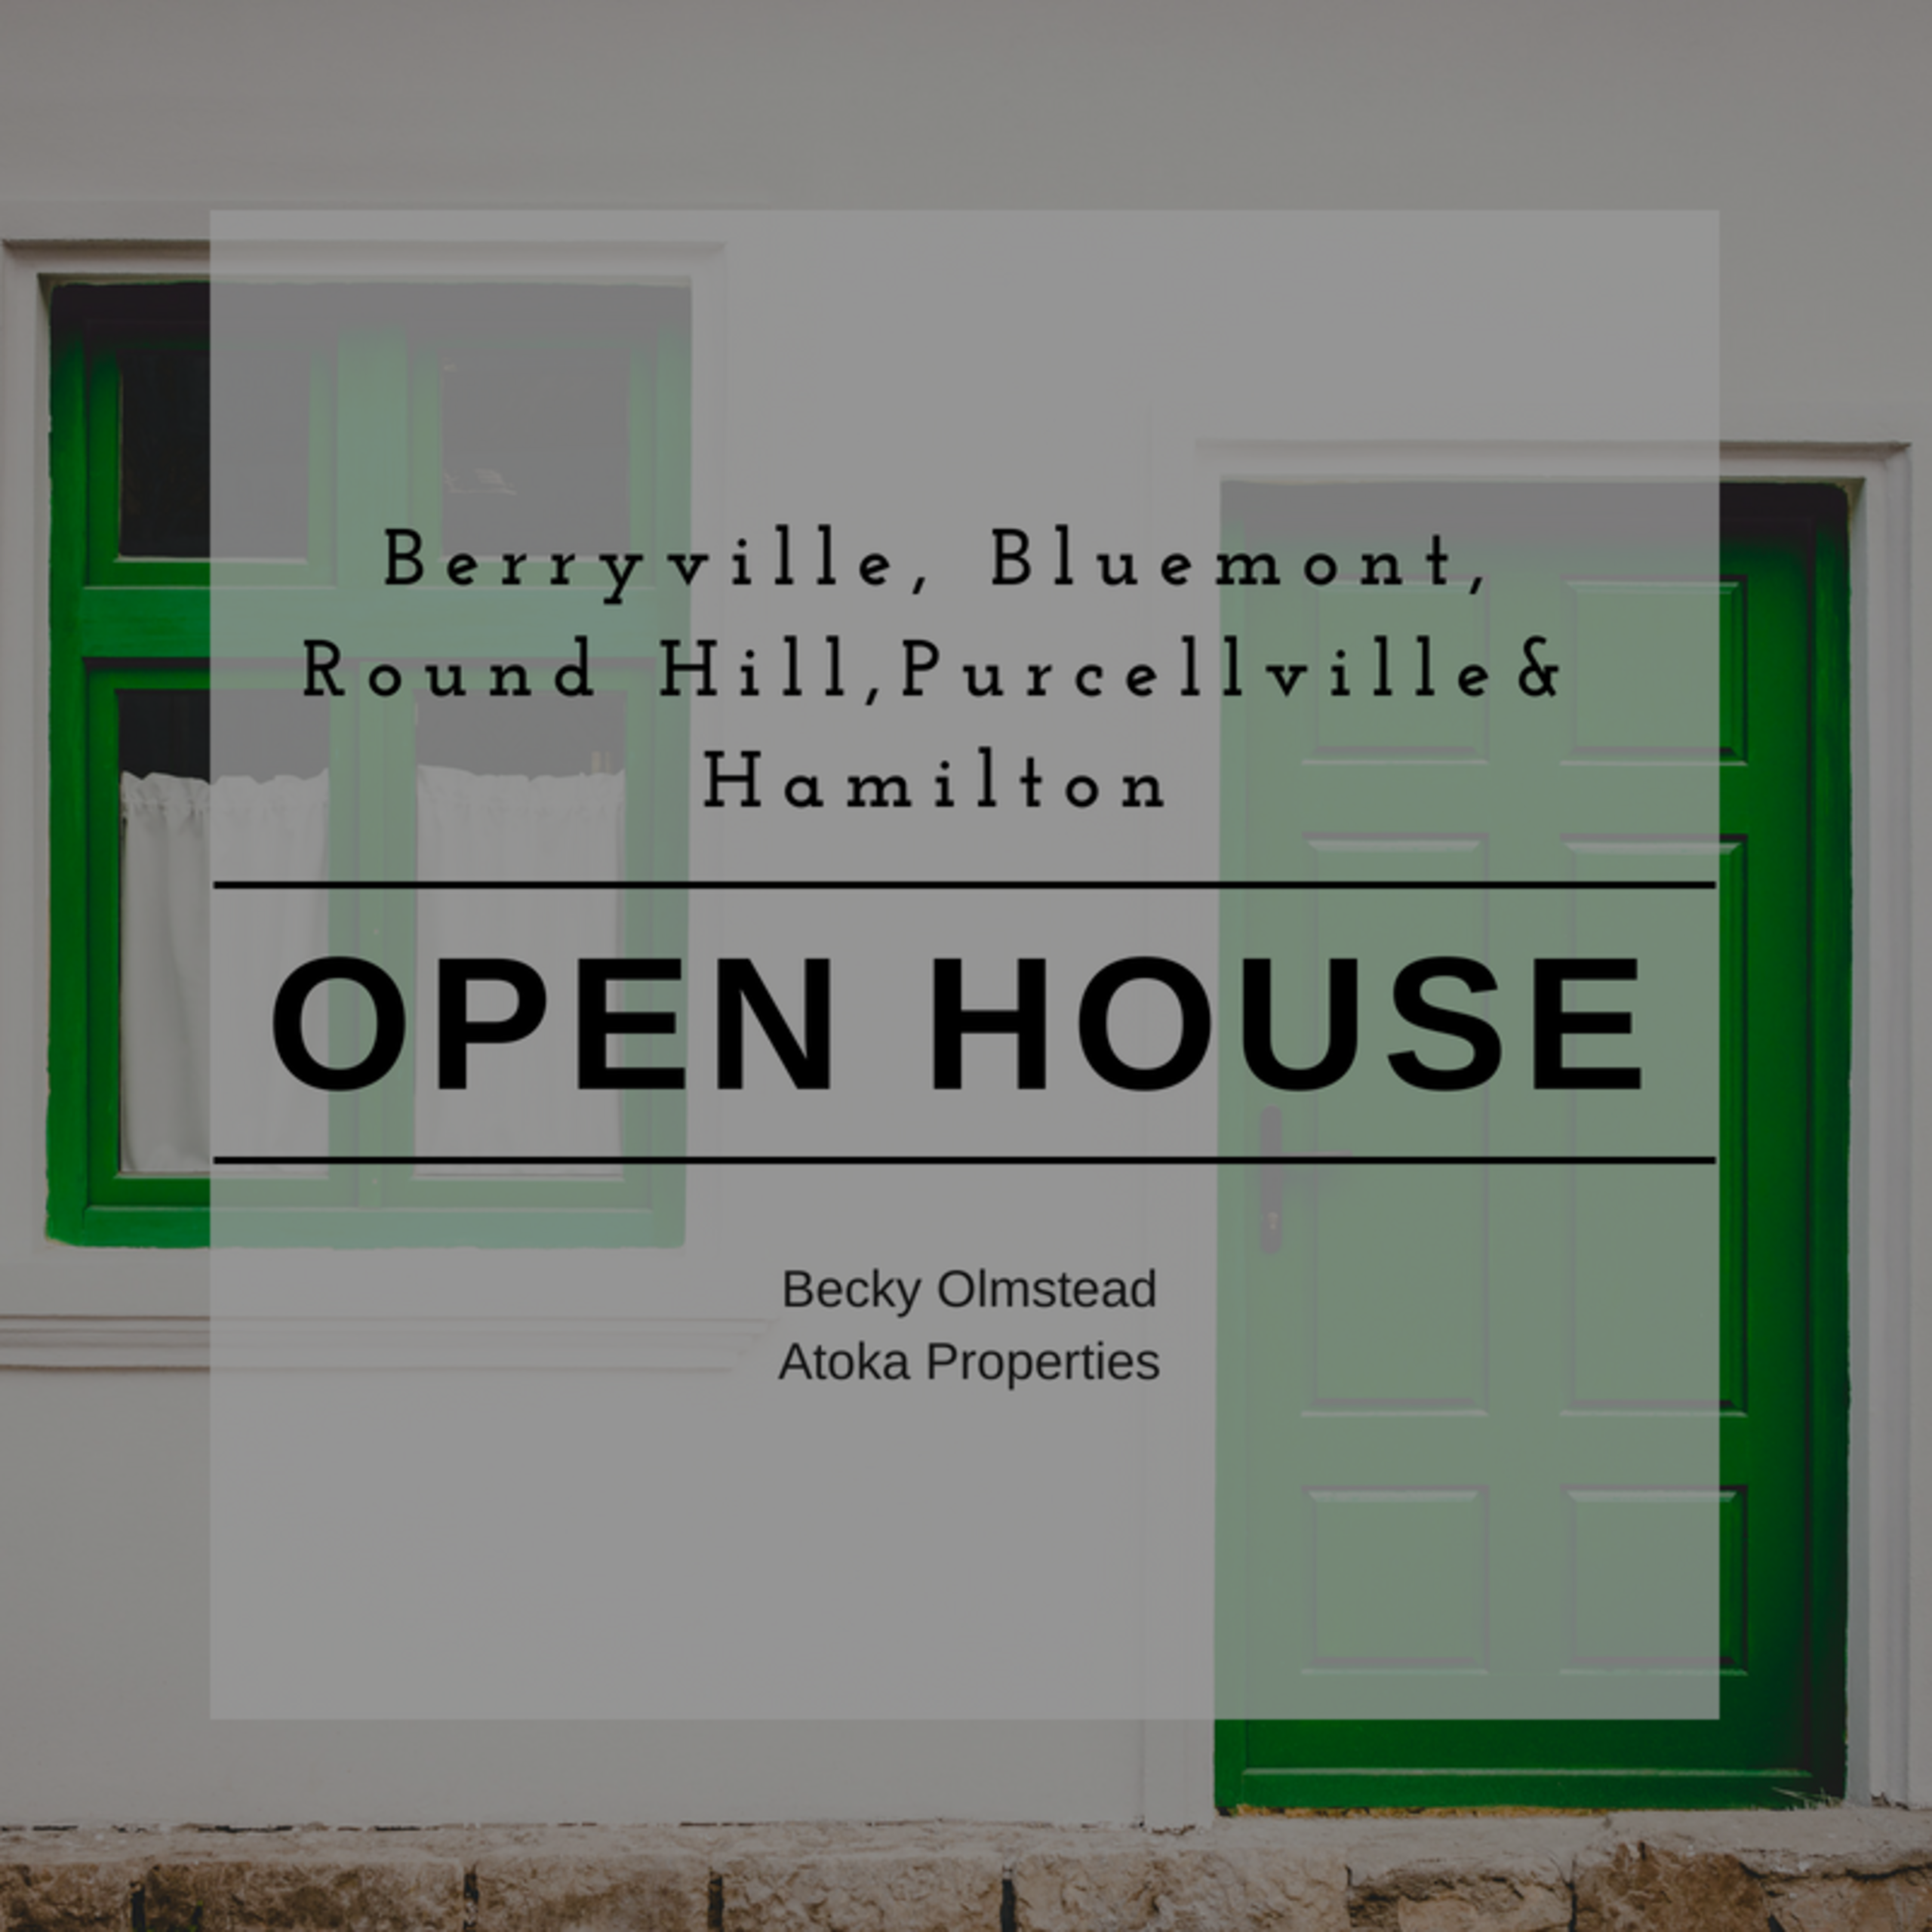 OPEN HOUSE LIST 9/1/2018 – 9/2/2018